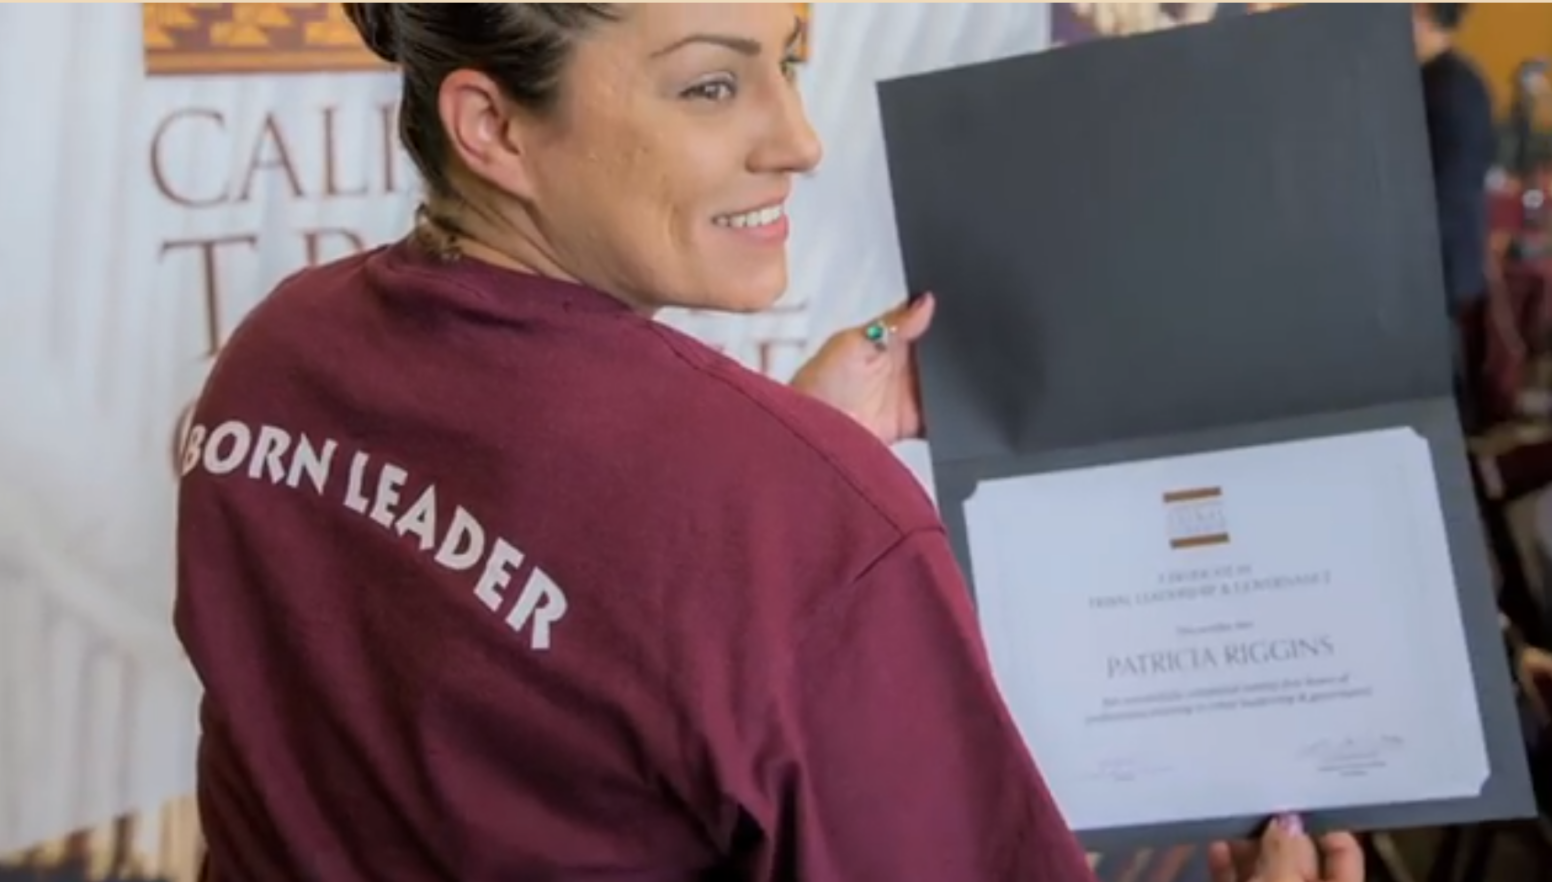 California Tribal College Student holding diploma and smiling. On the back of her t-shirt are the words Born Leader